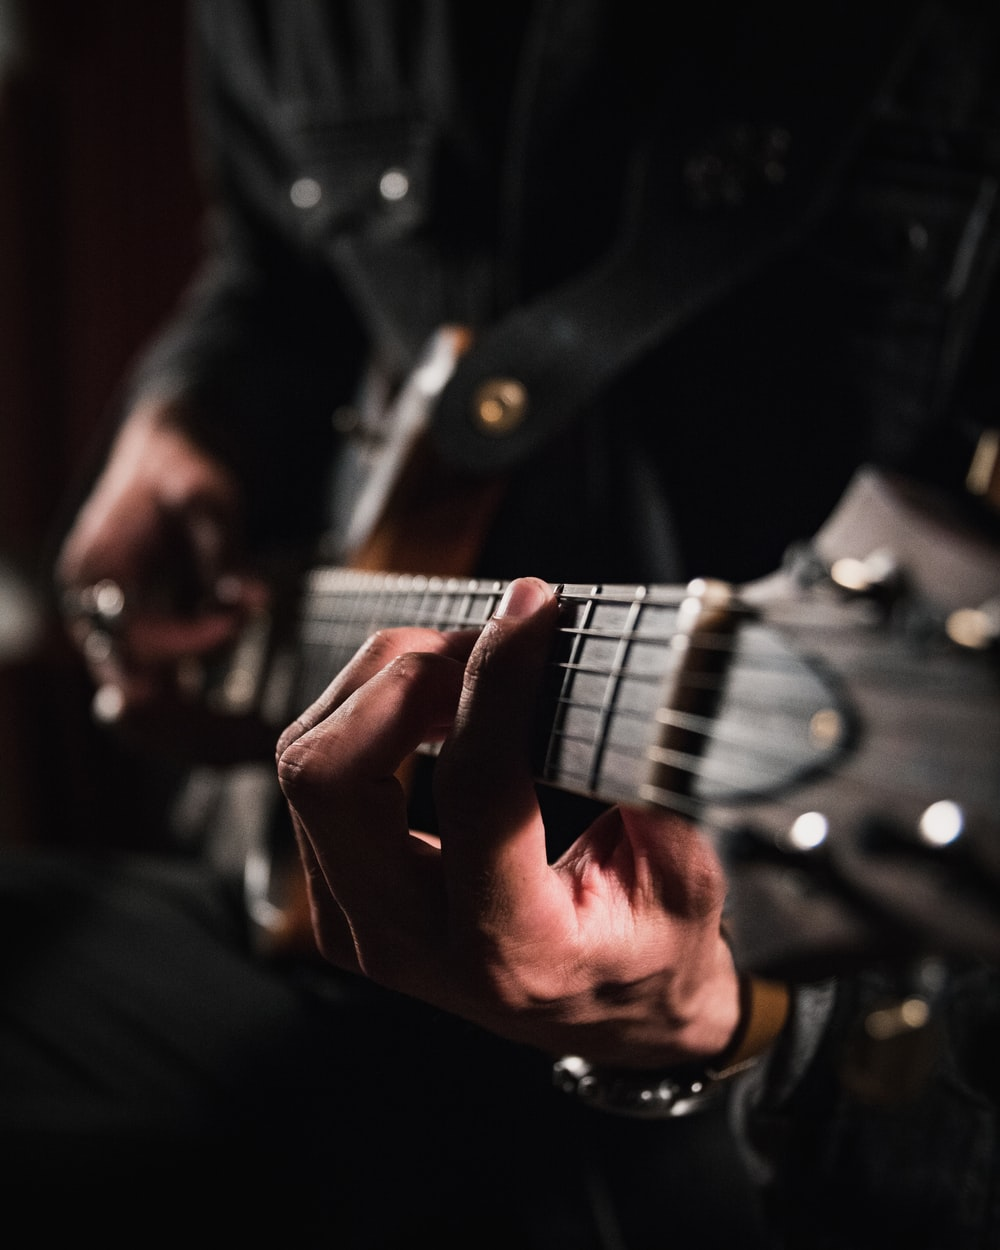 man playing guitar in close up photography